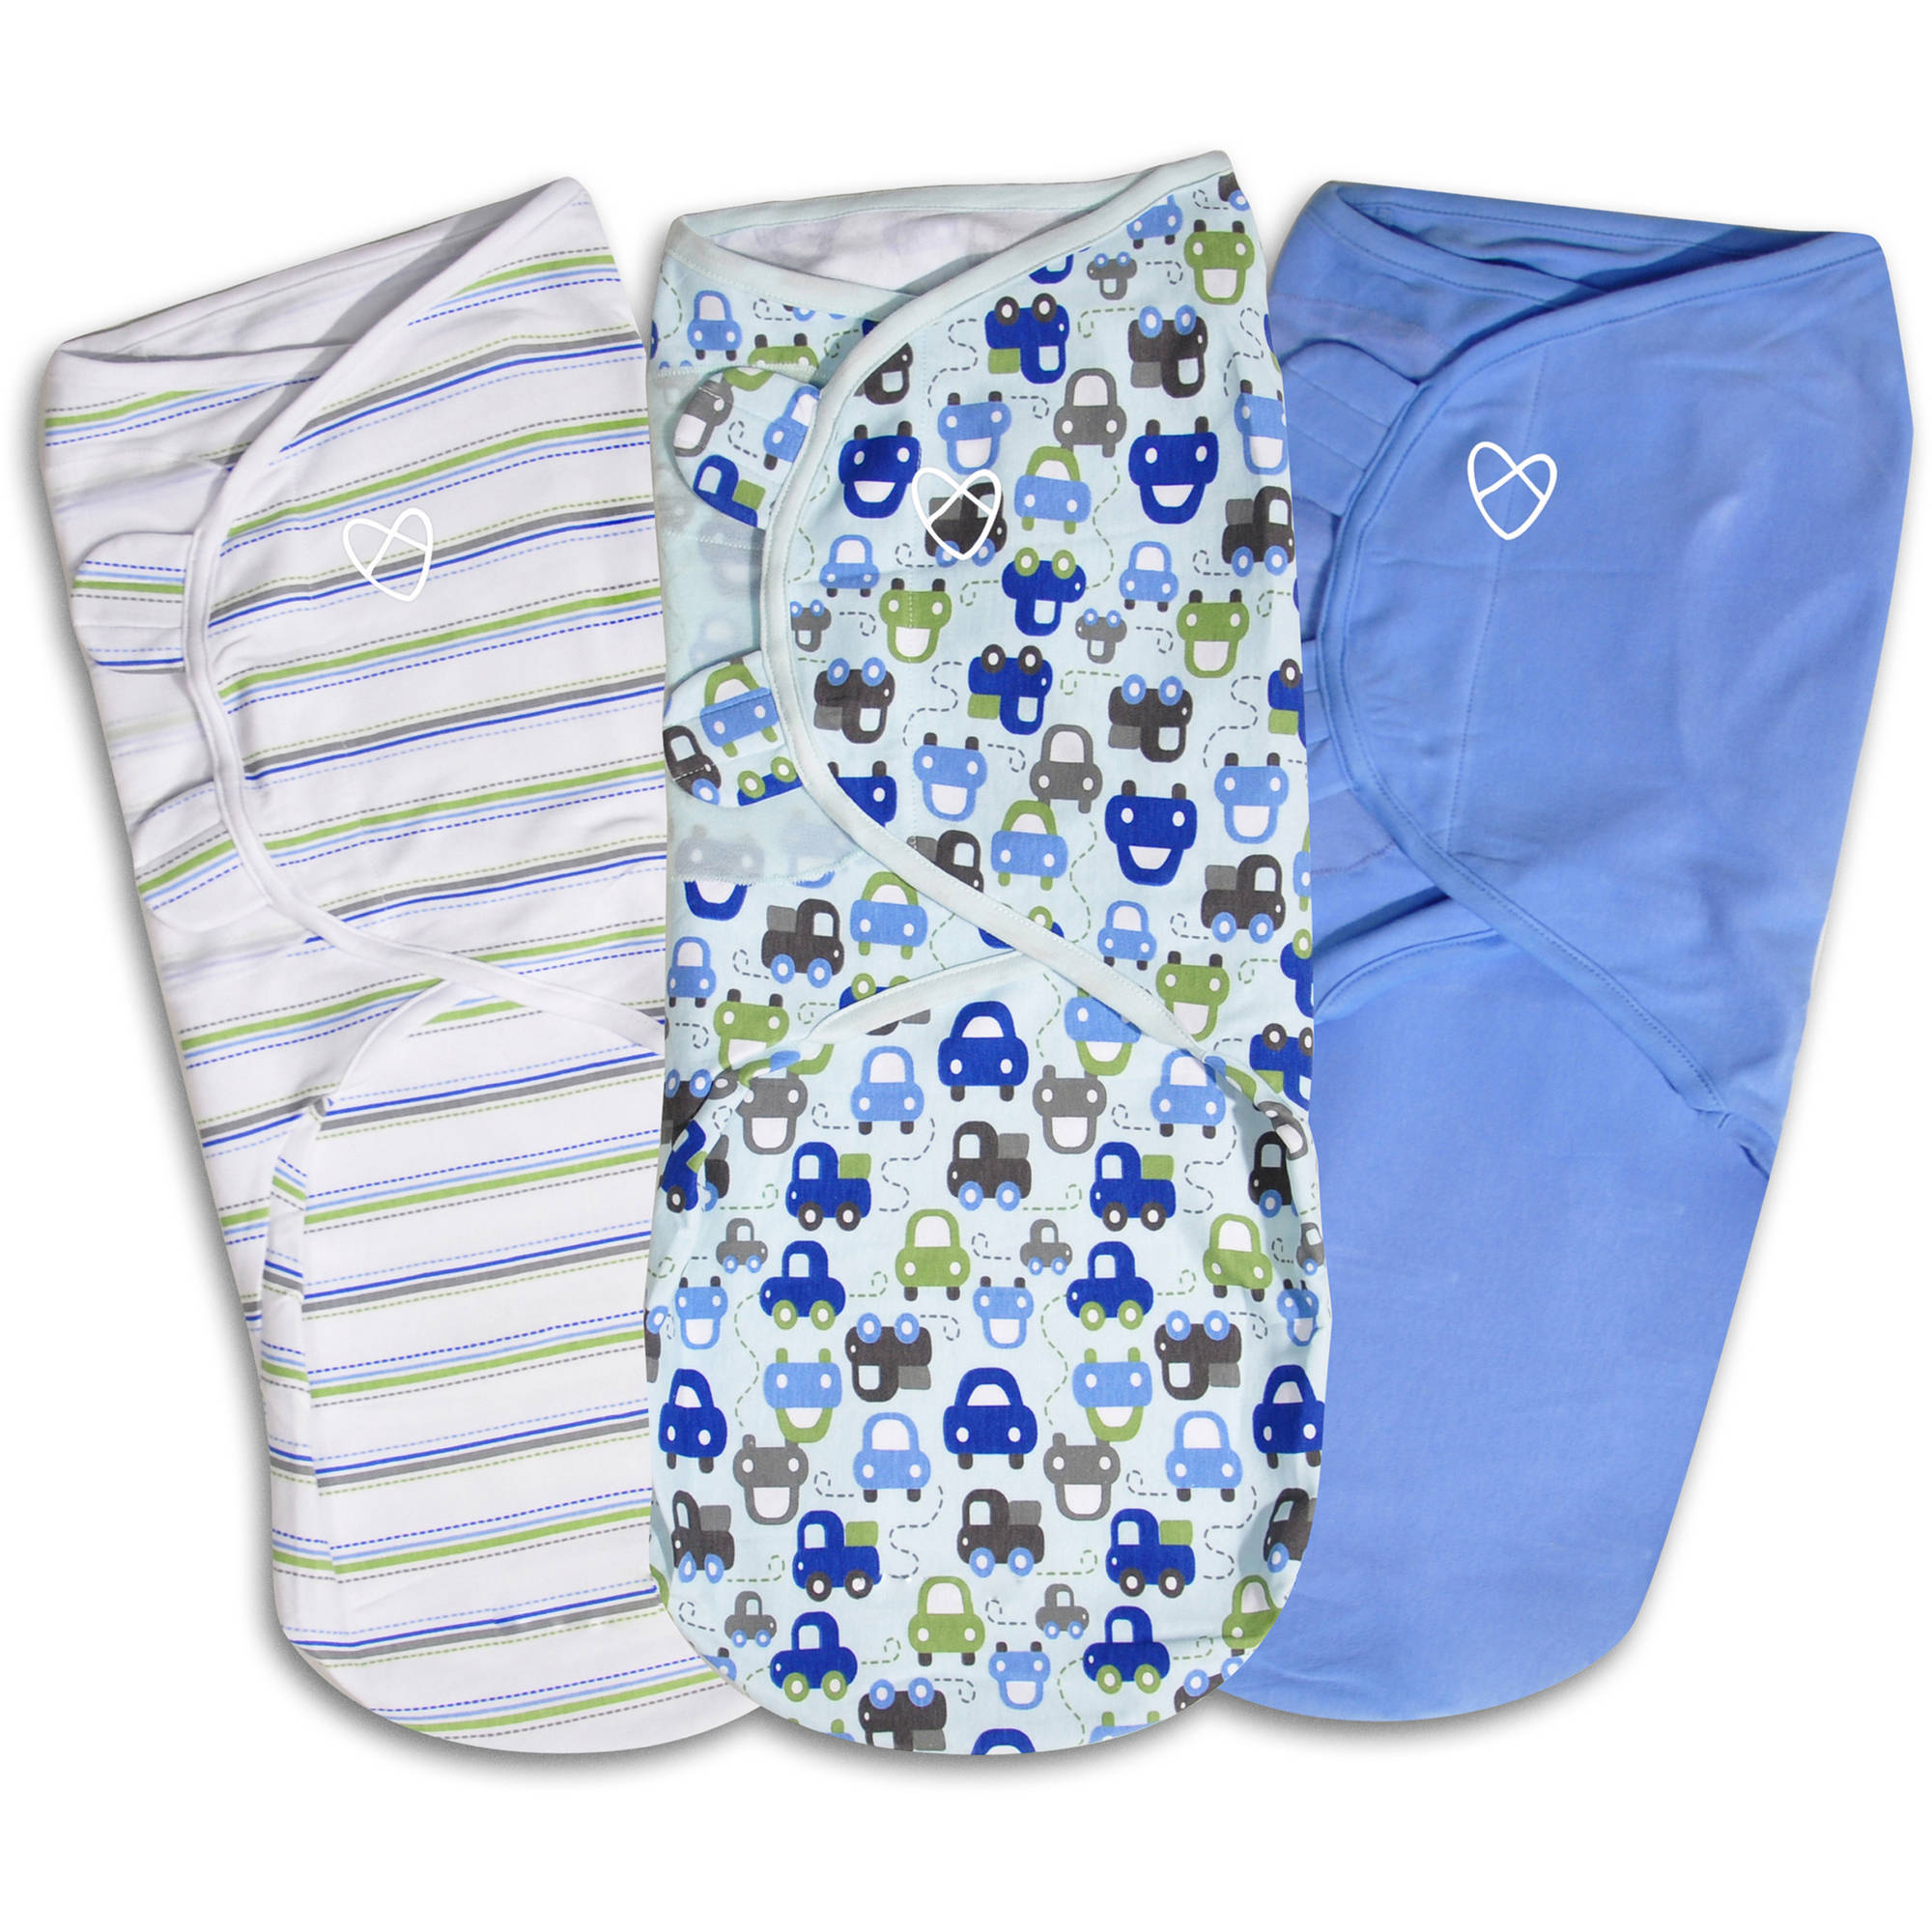 SwaddleMe Original Swaddle, 3-Pack, Graphic Car, Large